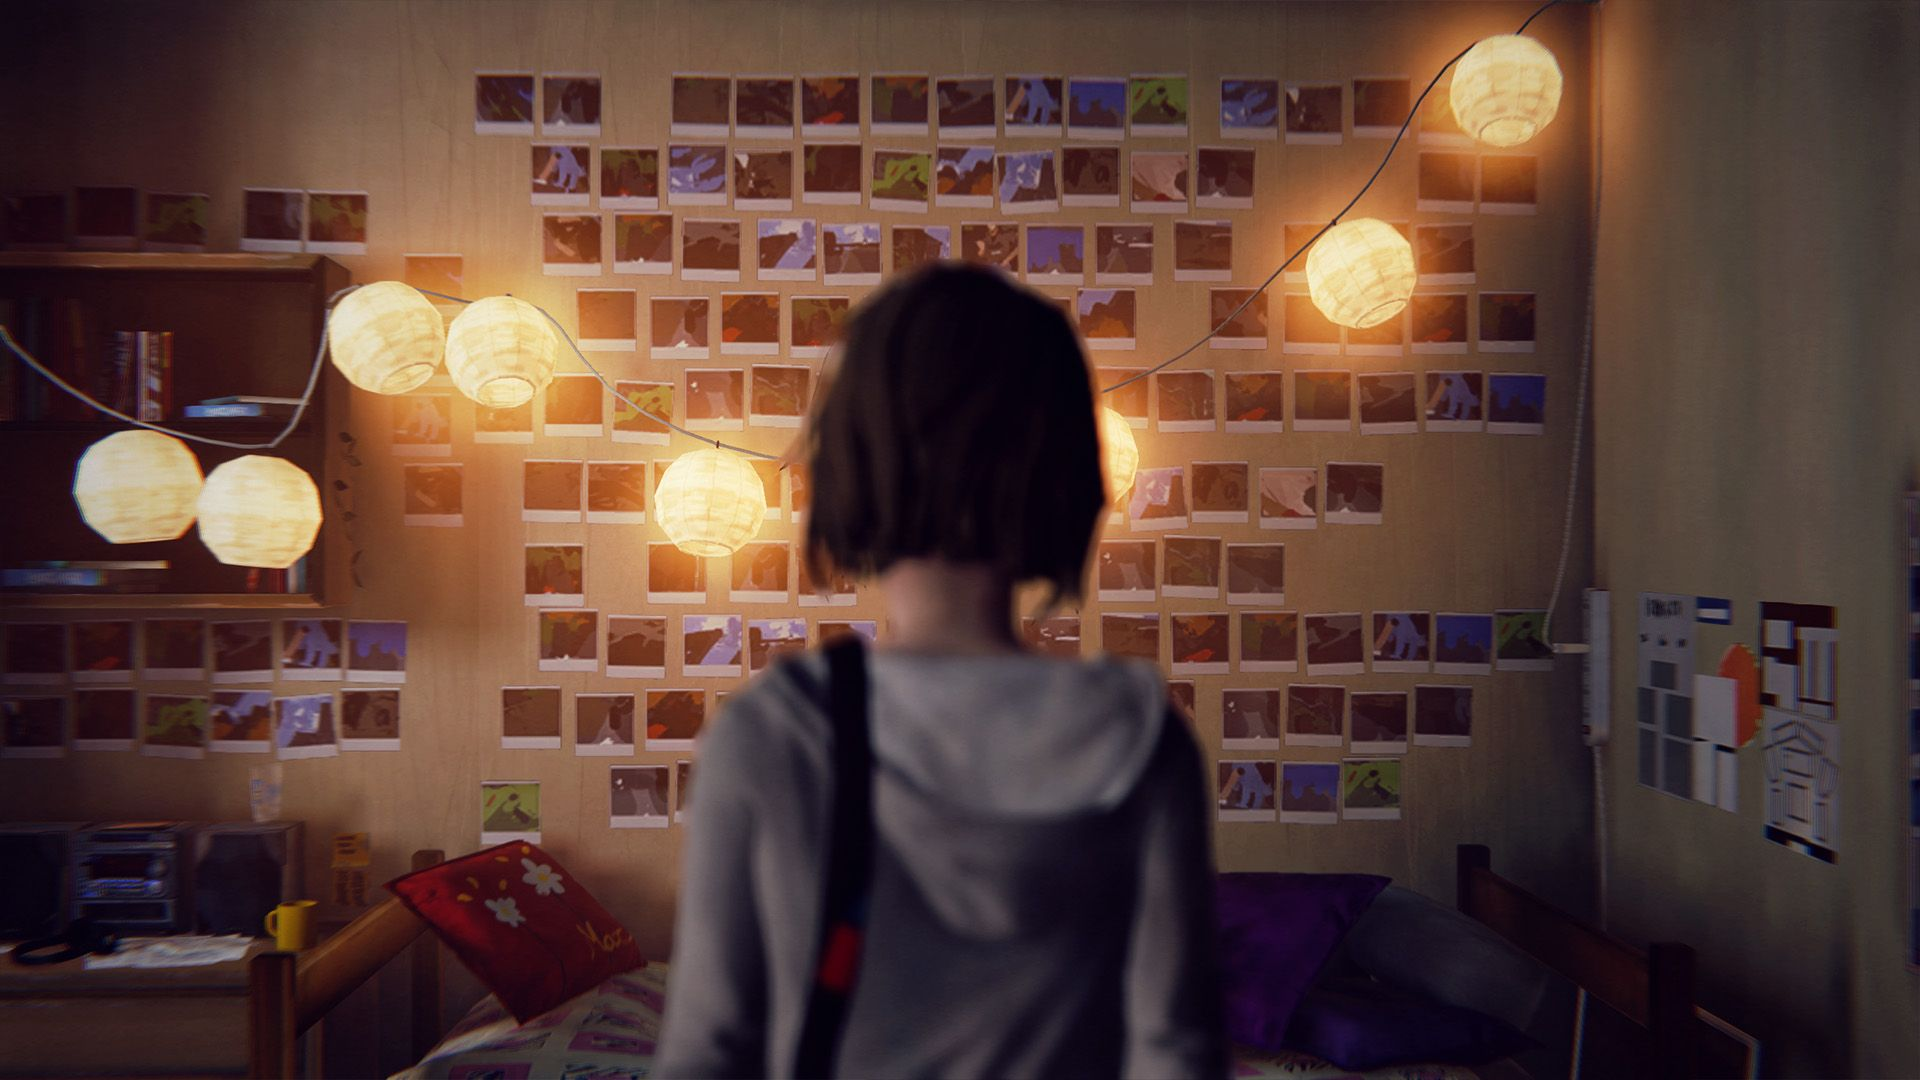 Life Is Strange Computer Wallpapers Desktop Backgrounds 1920x1080 Id 642030 Life Is Strange Wallpaper Life Is Strange Life Is Strange Episodes